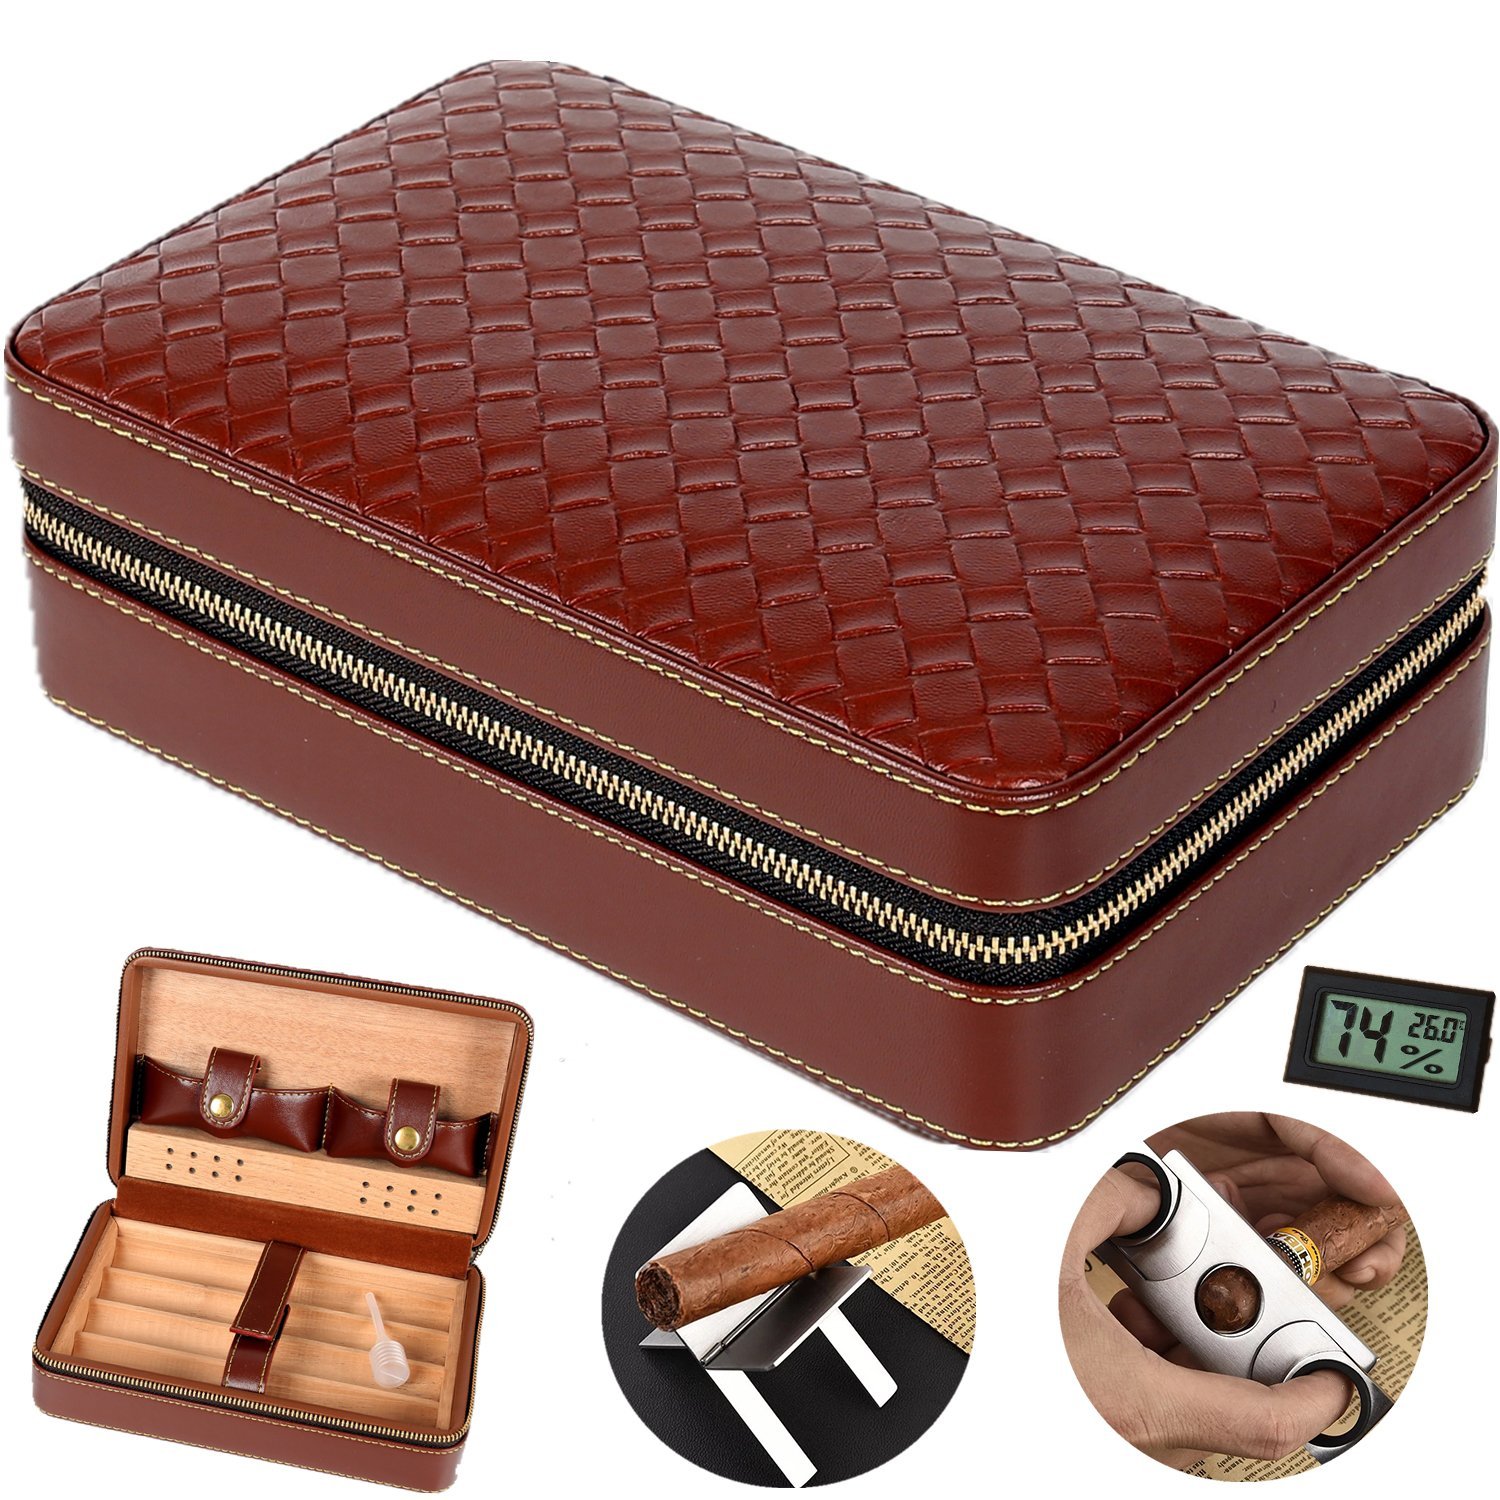 COMMODA Portable Genuine Leather Cedar Cigar Travel Case Cedar Humidor with Digital Hygrometer Cutter Stand Set Wooden Box for 4 Cigars (Brown Woven)